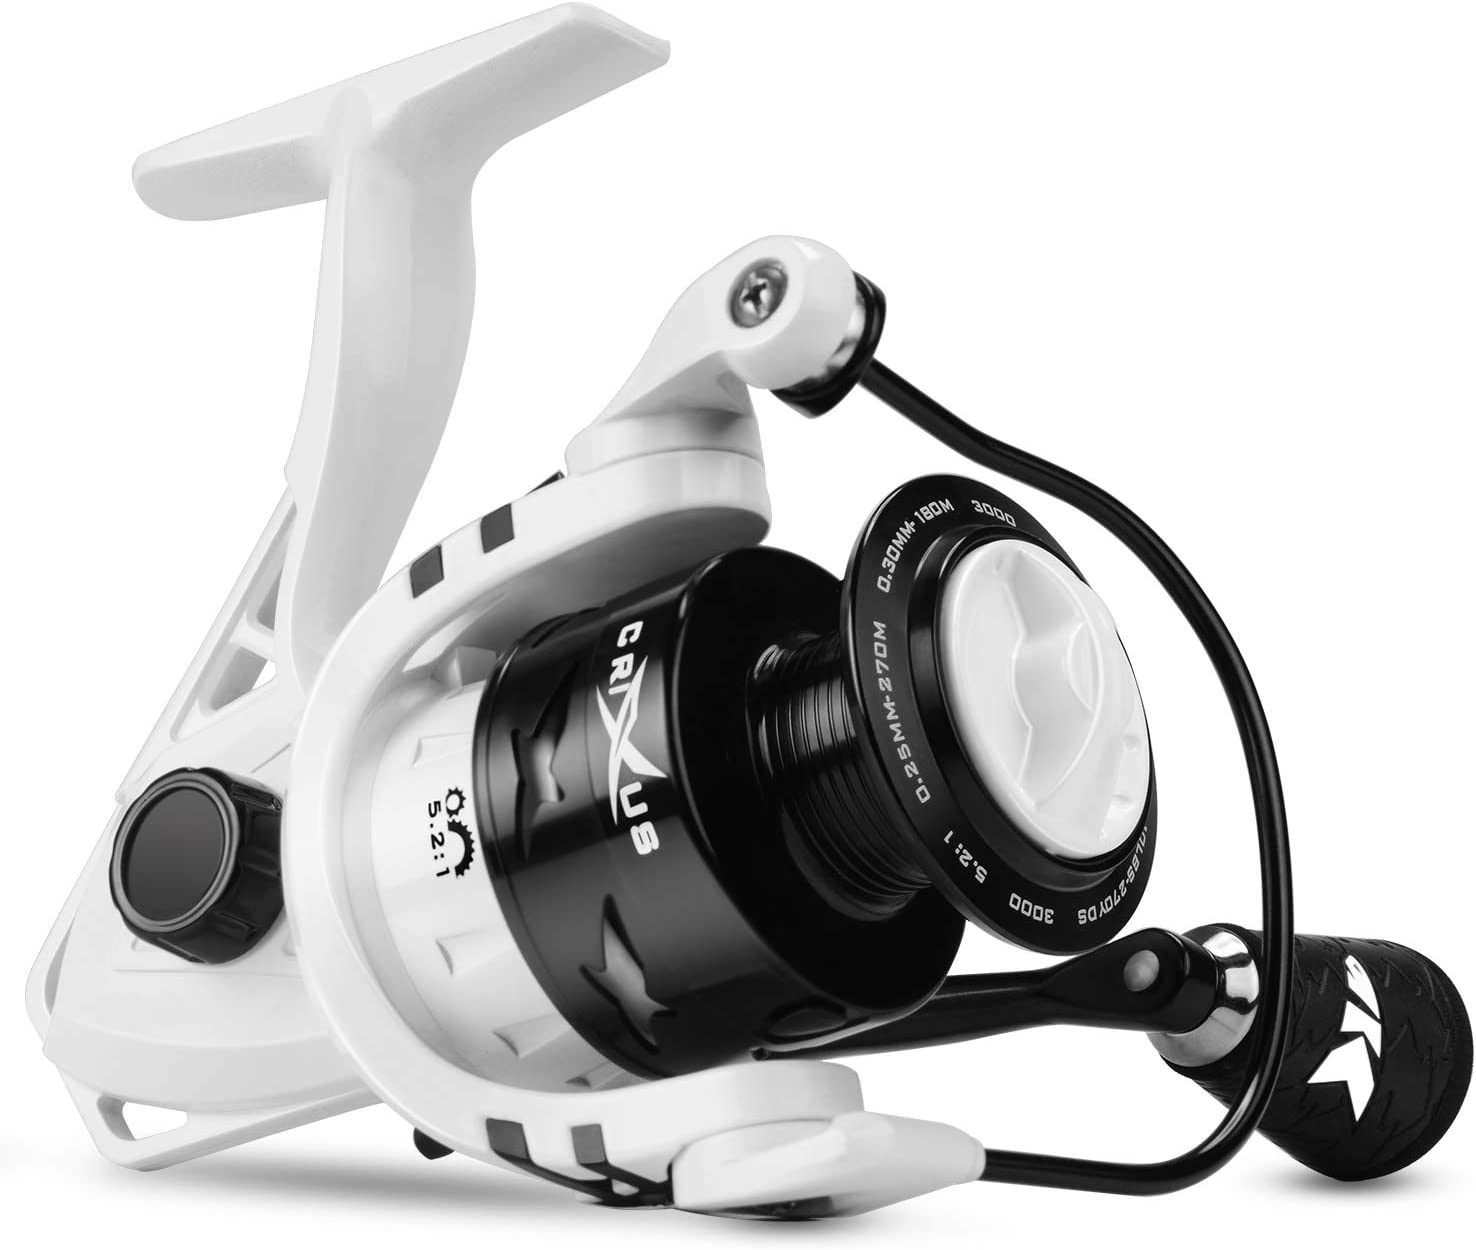 KastKing Crixus Spinning Fishing Reel, 17.5 lbs. Drag, SuperPolymer Grips, Aluminum Spool, Lightweight Graphite Frame, Graphite Body Rotor, Aluminum Handle.